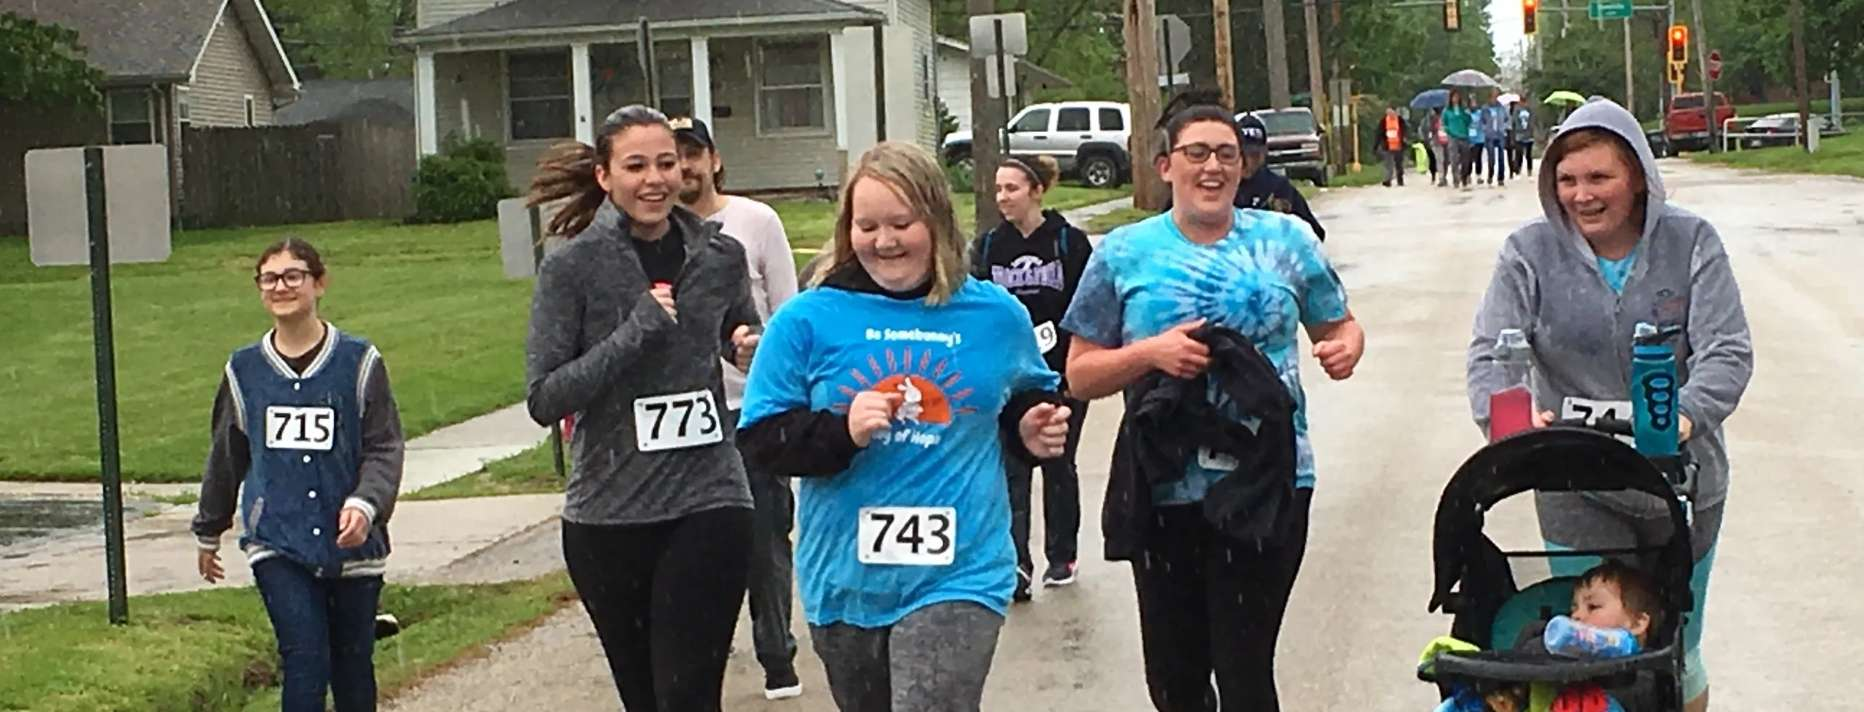 More than 80 joined the inaugural 5K run/walk Be Somebunny's Ray of Hope sponsored by Montgomery Co Health Dept on Saturday, May 11.